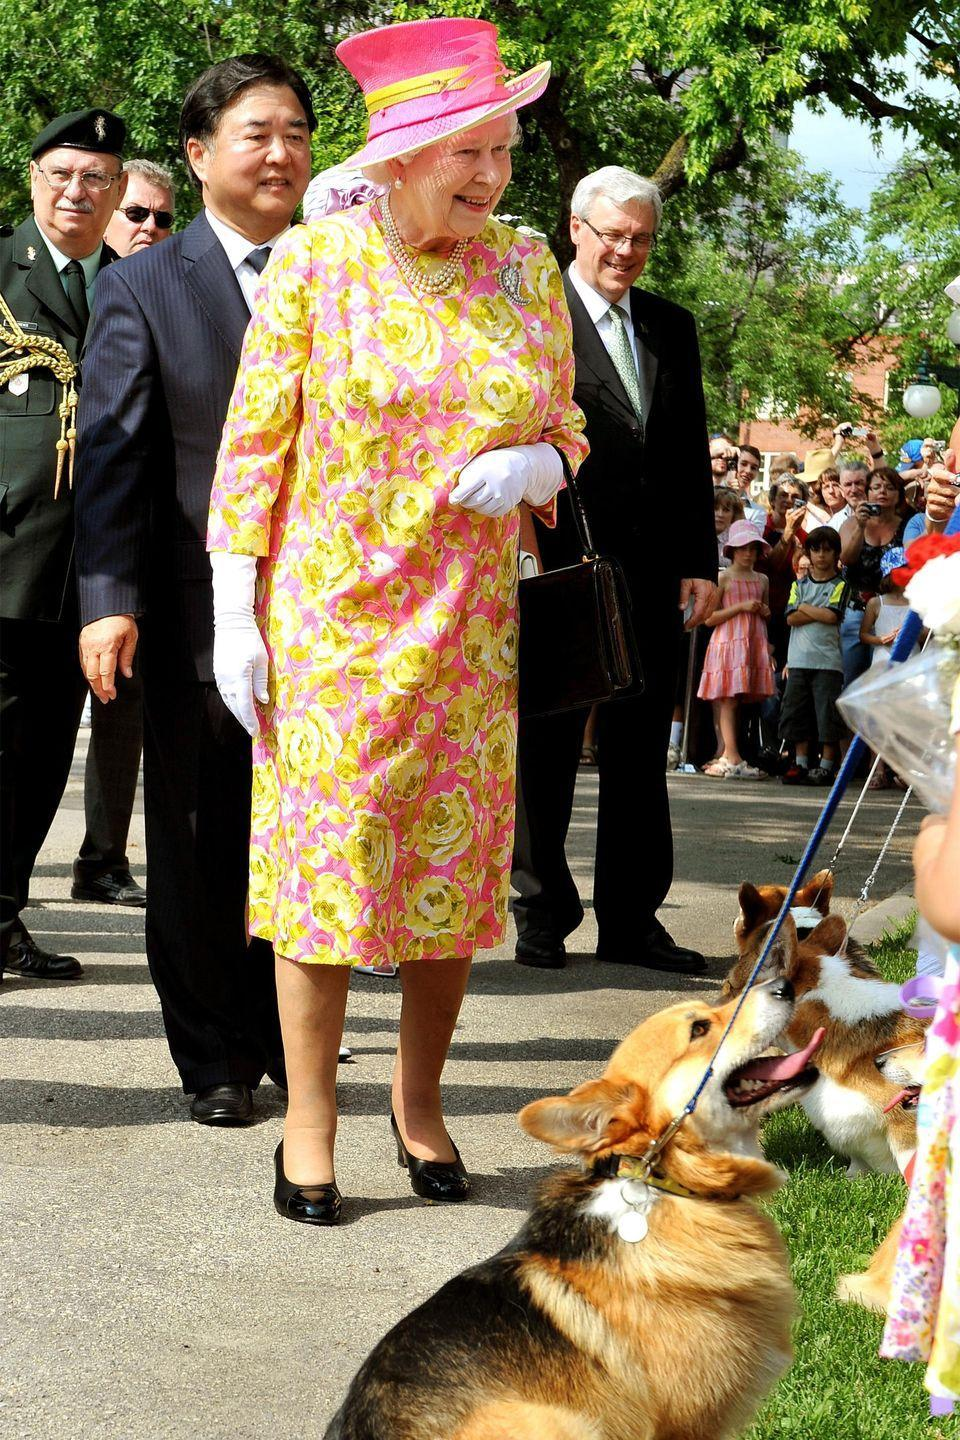 <p>The queen adores her pets, especially corgis, so it's no surprise she chatted with corgi dog owners when she left the Government House in Winnipeg, Canada. Naturally, Queen Elizabeth wore a vibrant floral printed dress, matching hat, a pearl necklace, and white gloves for the visit. <br></p>